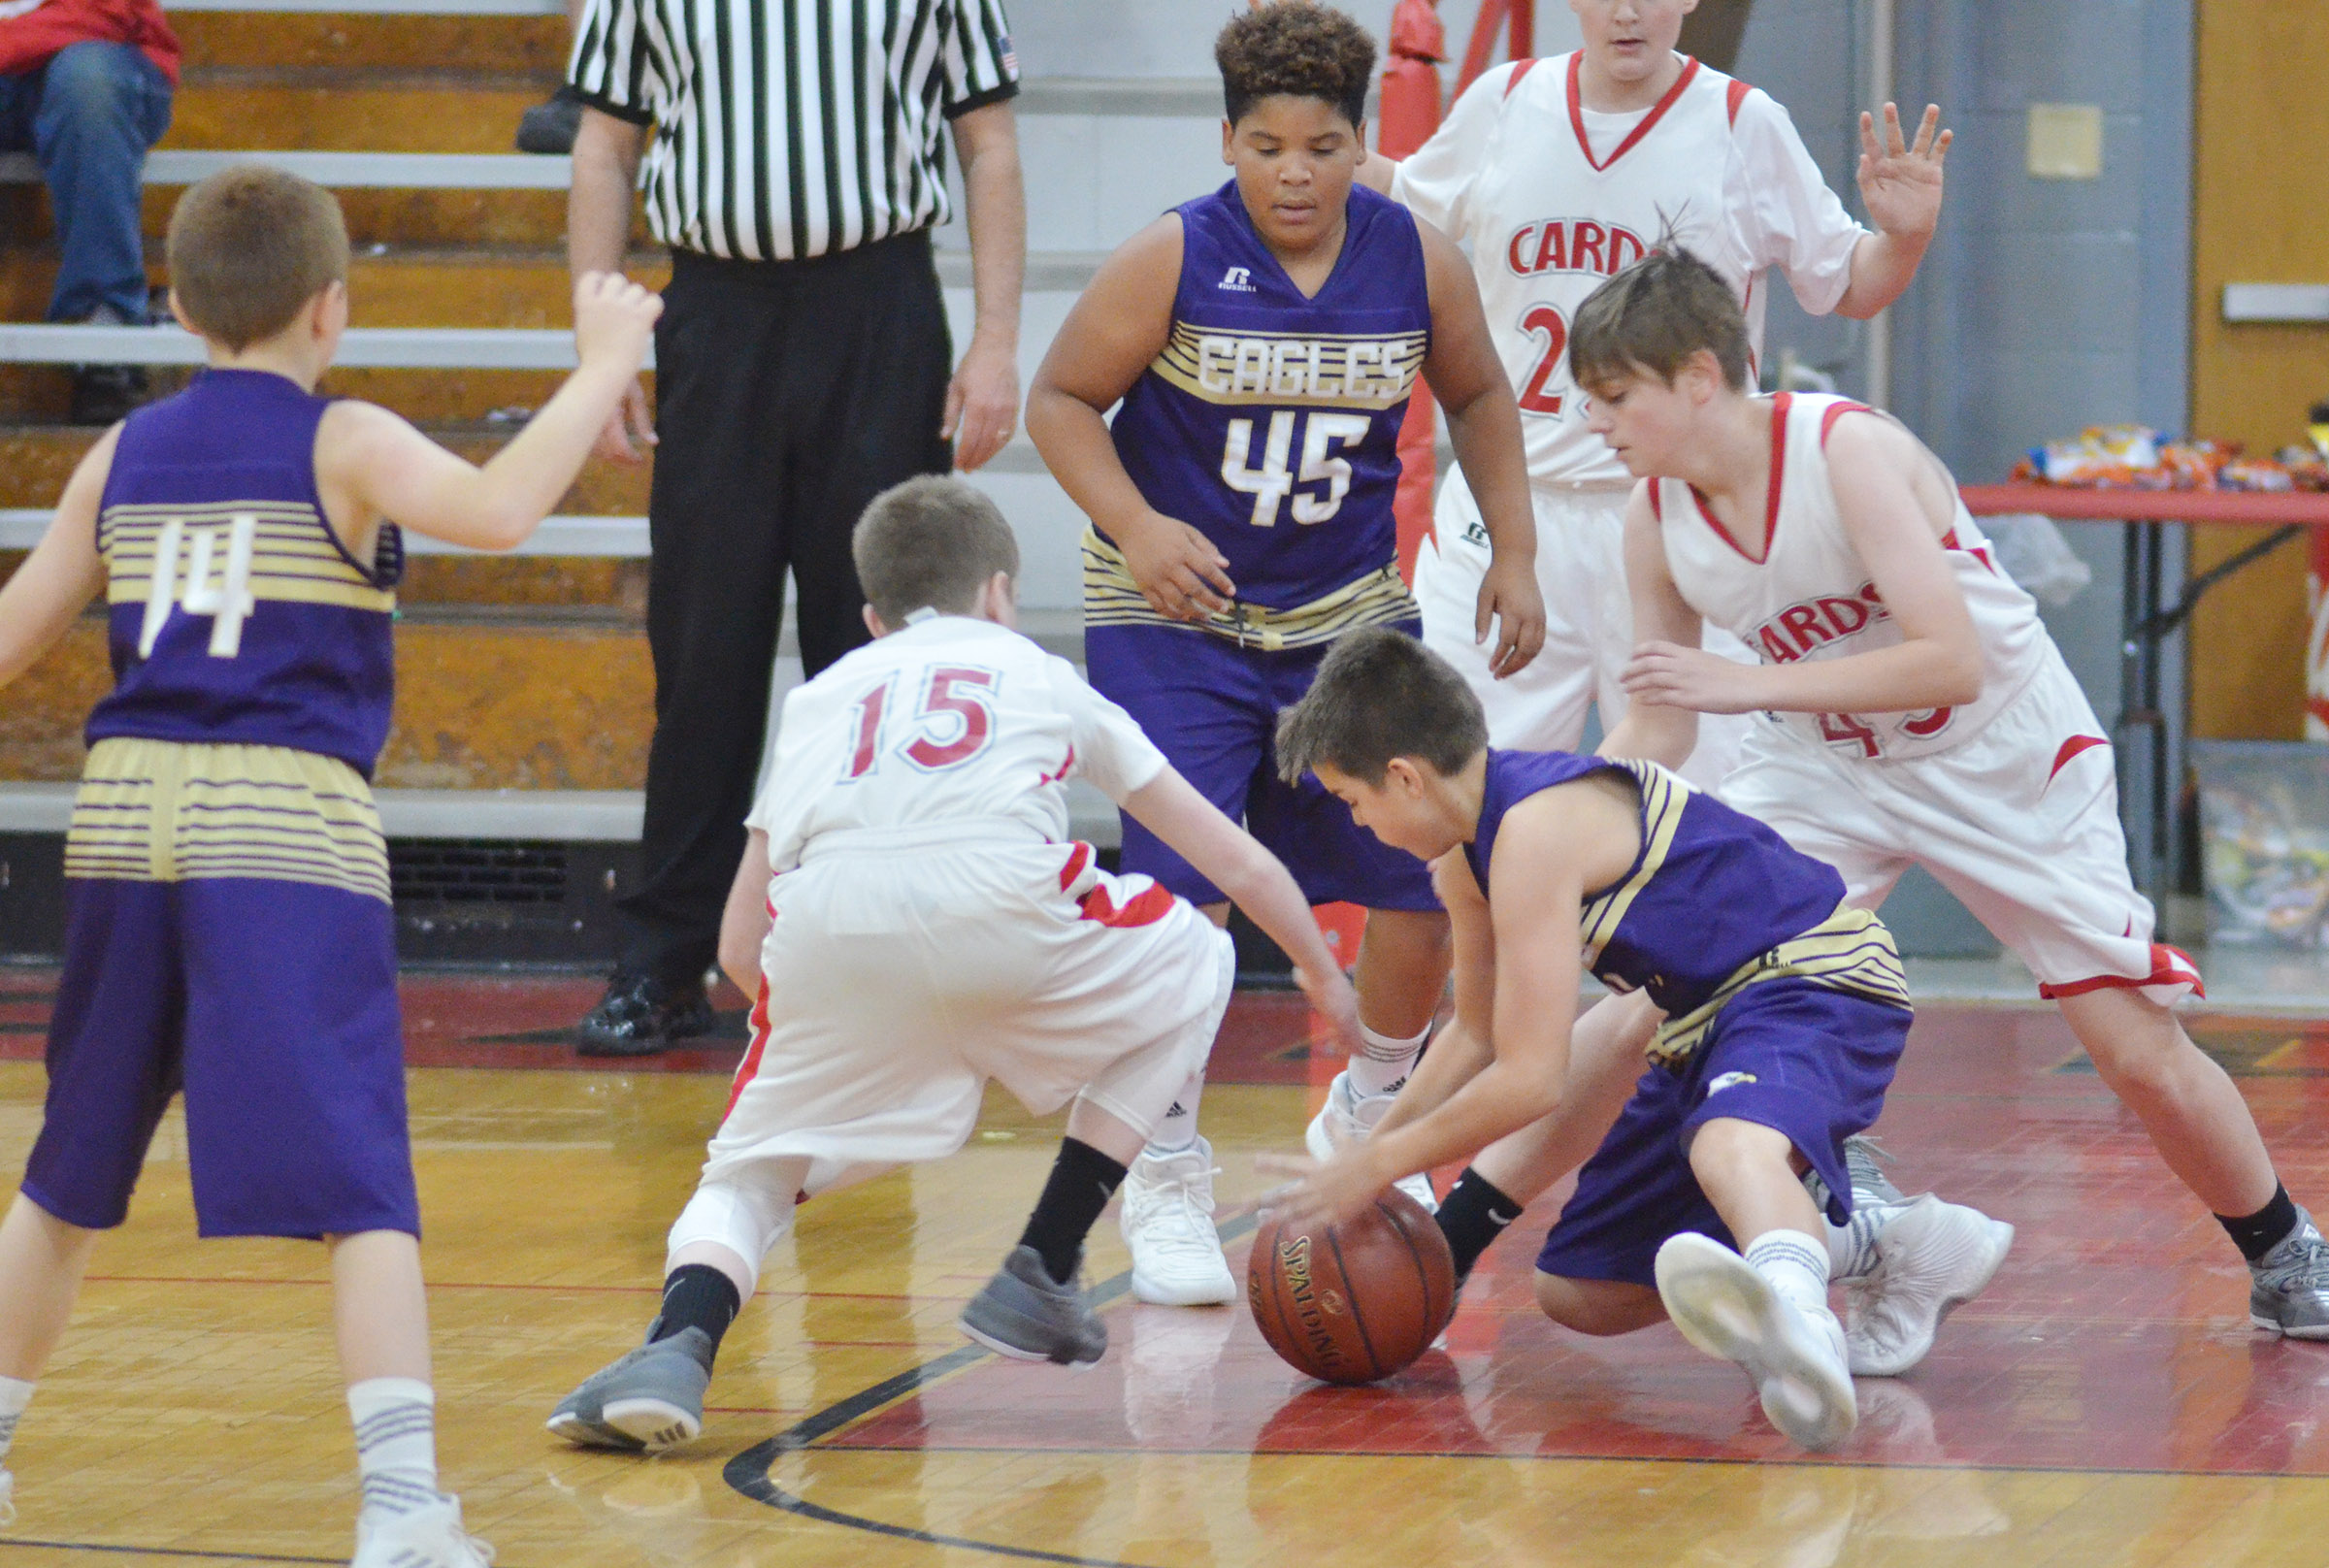 CMS sixth-graders Devin Kinser, standing, and Kaden Bloyd battles for the ball.